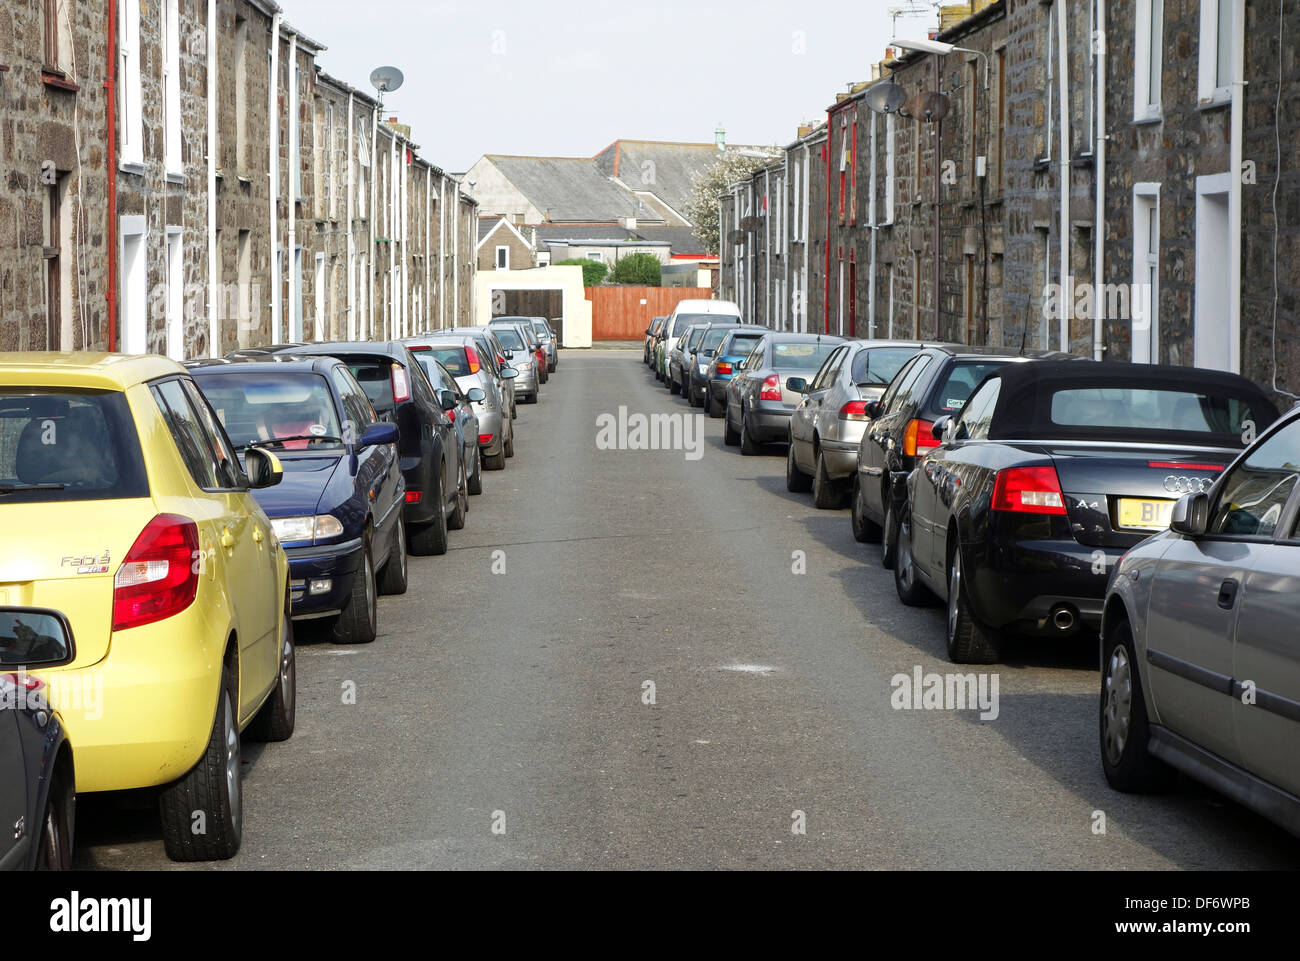 Cars double parked in a narrow street - Stock Image